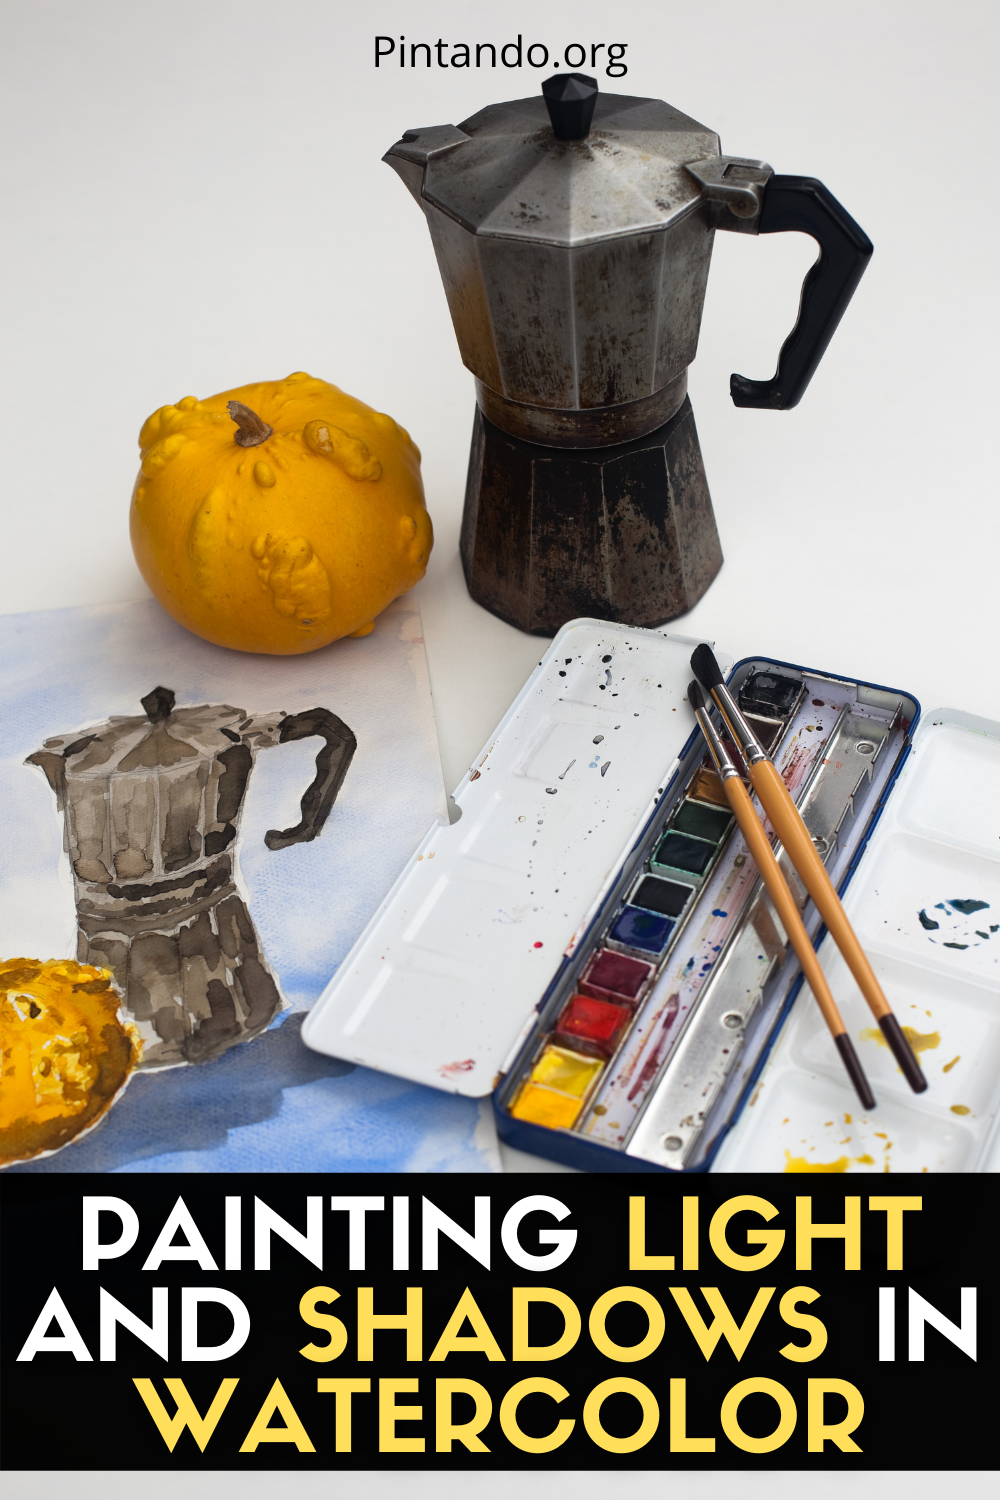 PAINTING LIGHT AND SHADOWS IN WATERCOLOR (1)